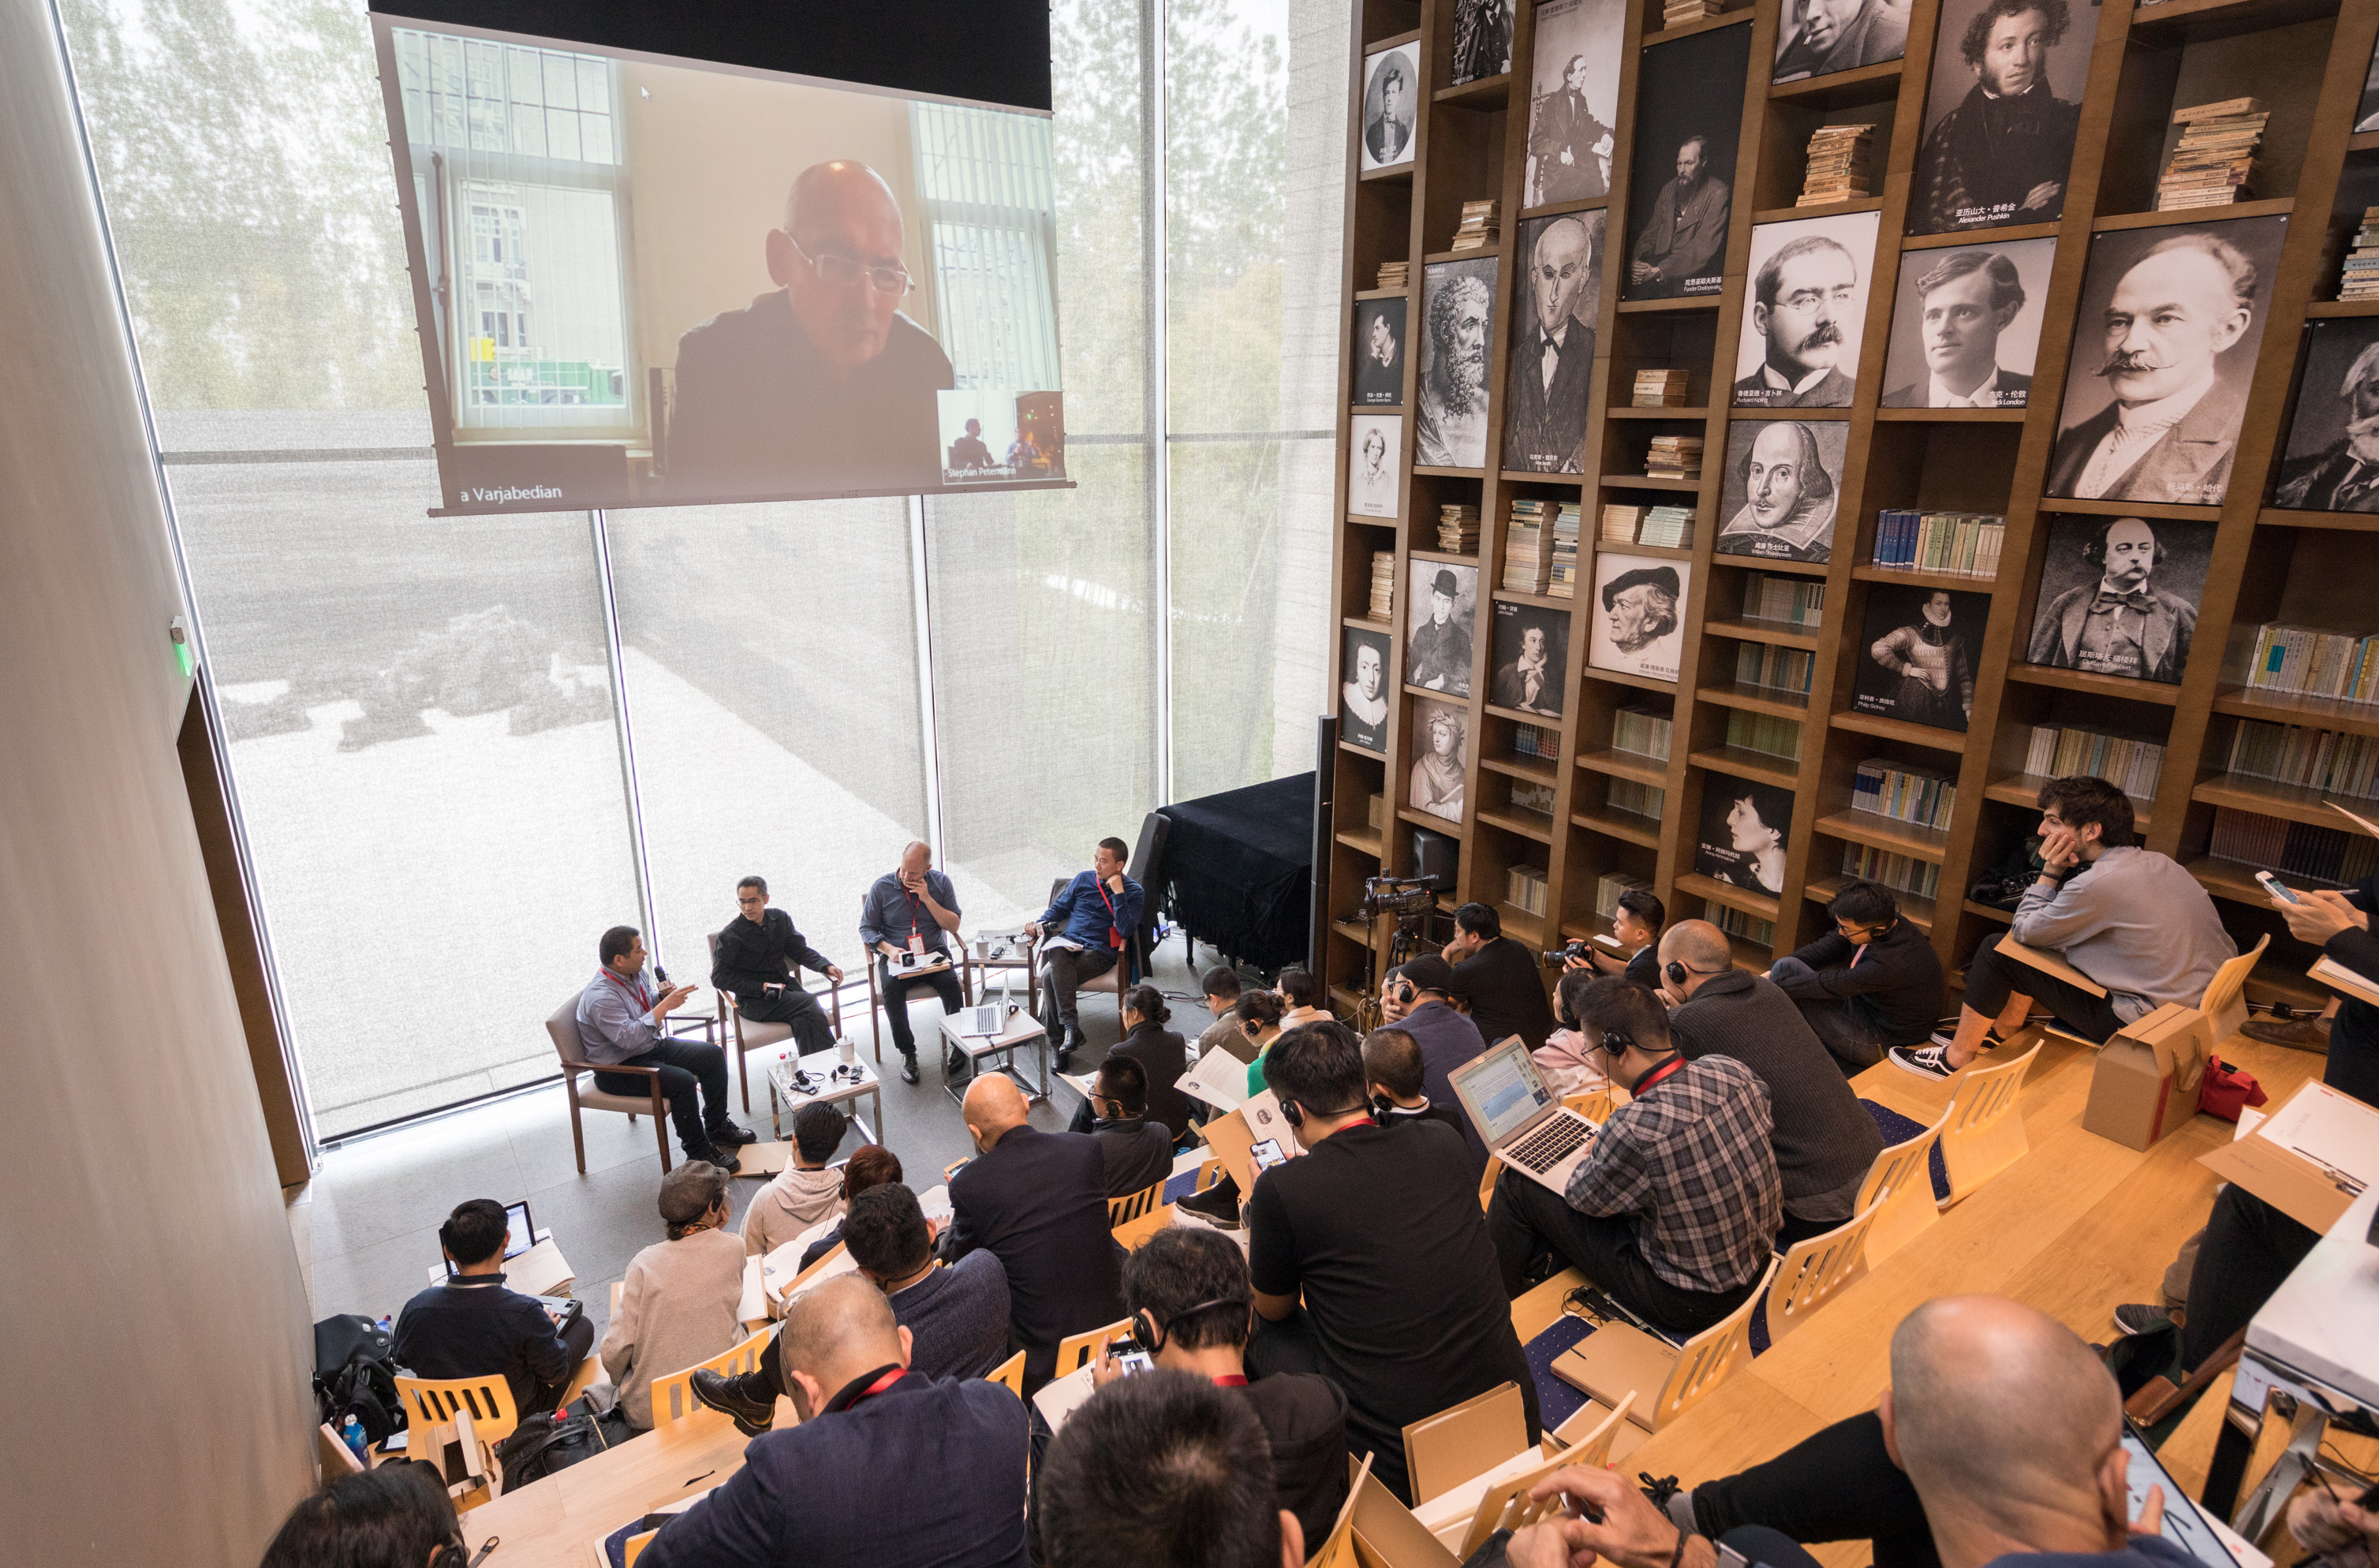 02_Prof. Ho during the interview by Koolhaas2